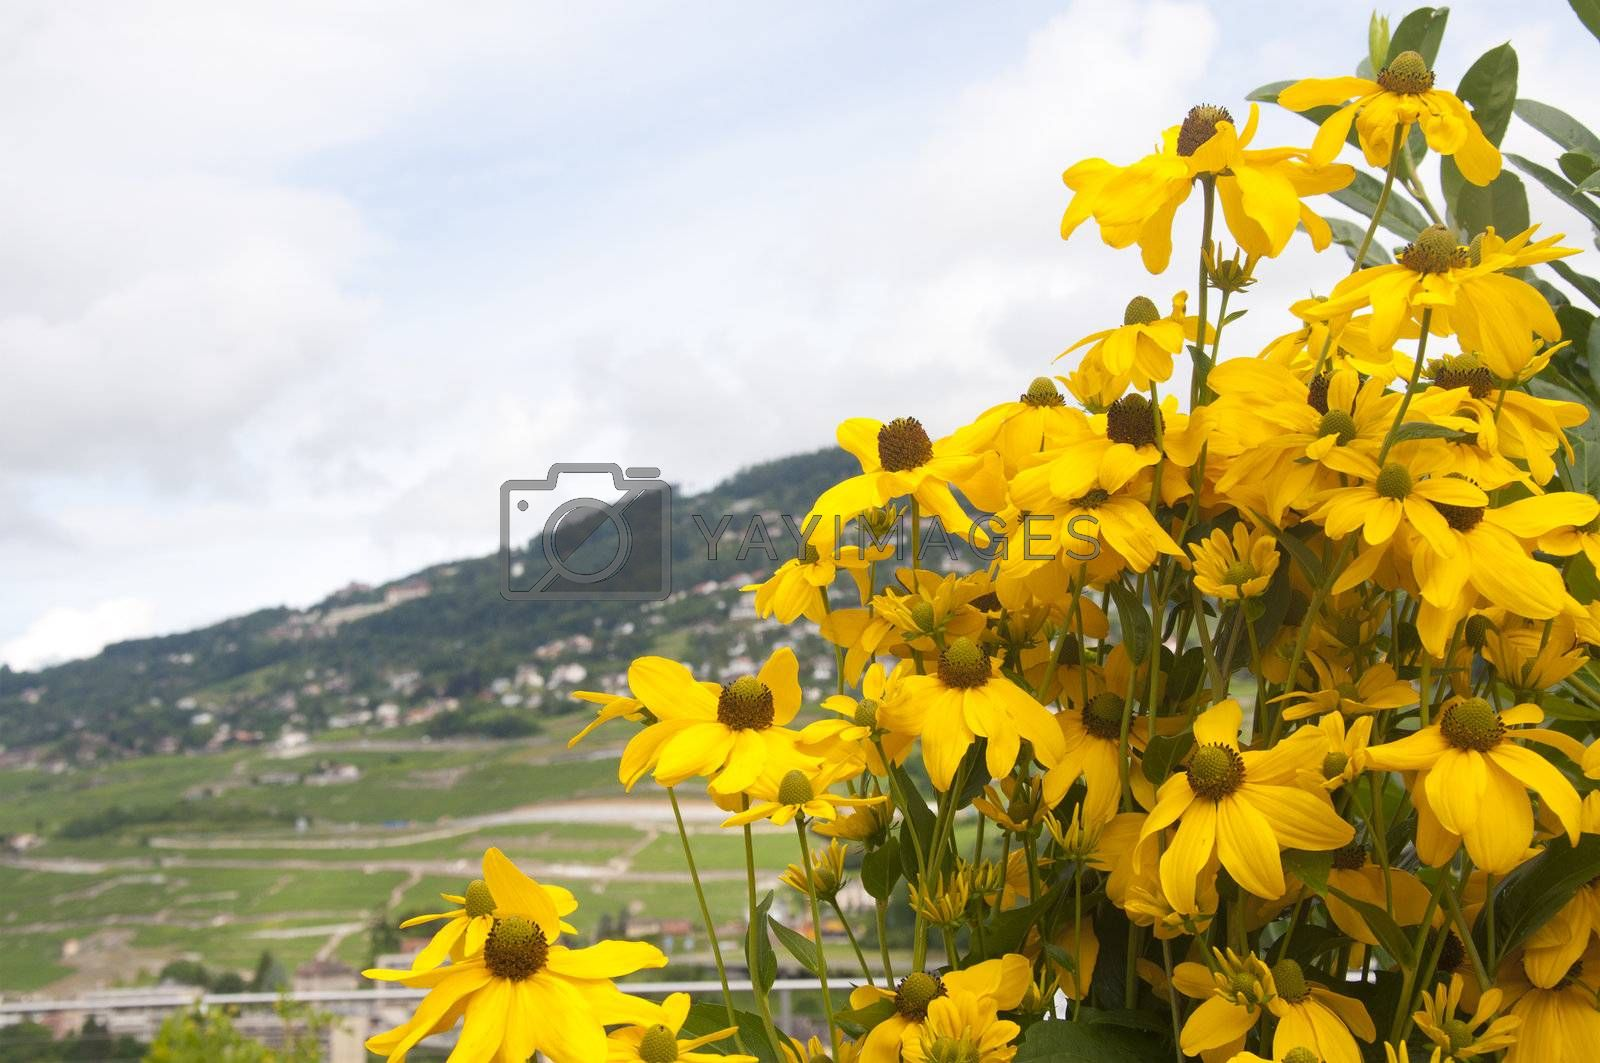 Black-eyed Susans against a beautiful countryside in Switzerland